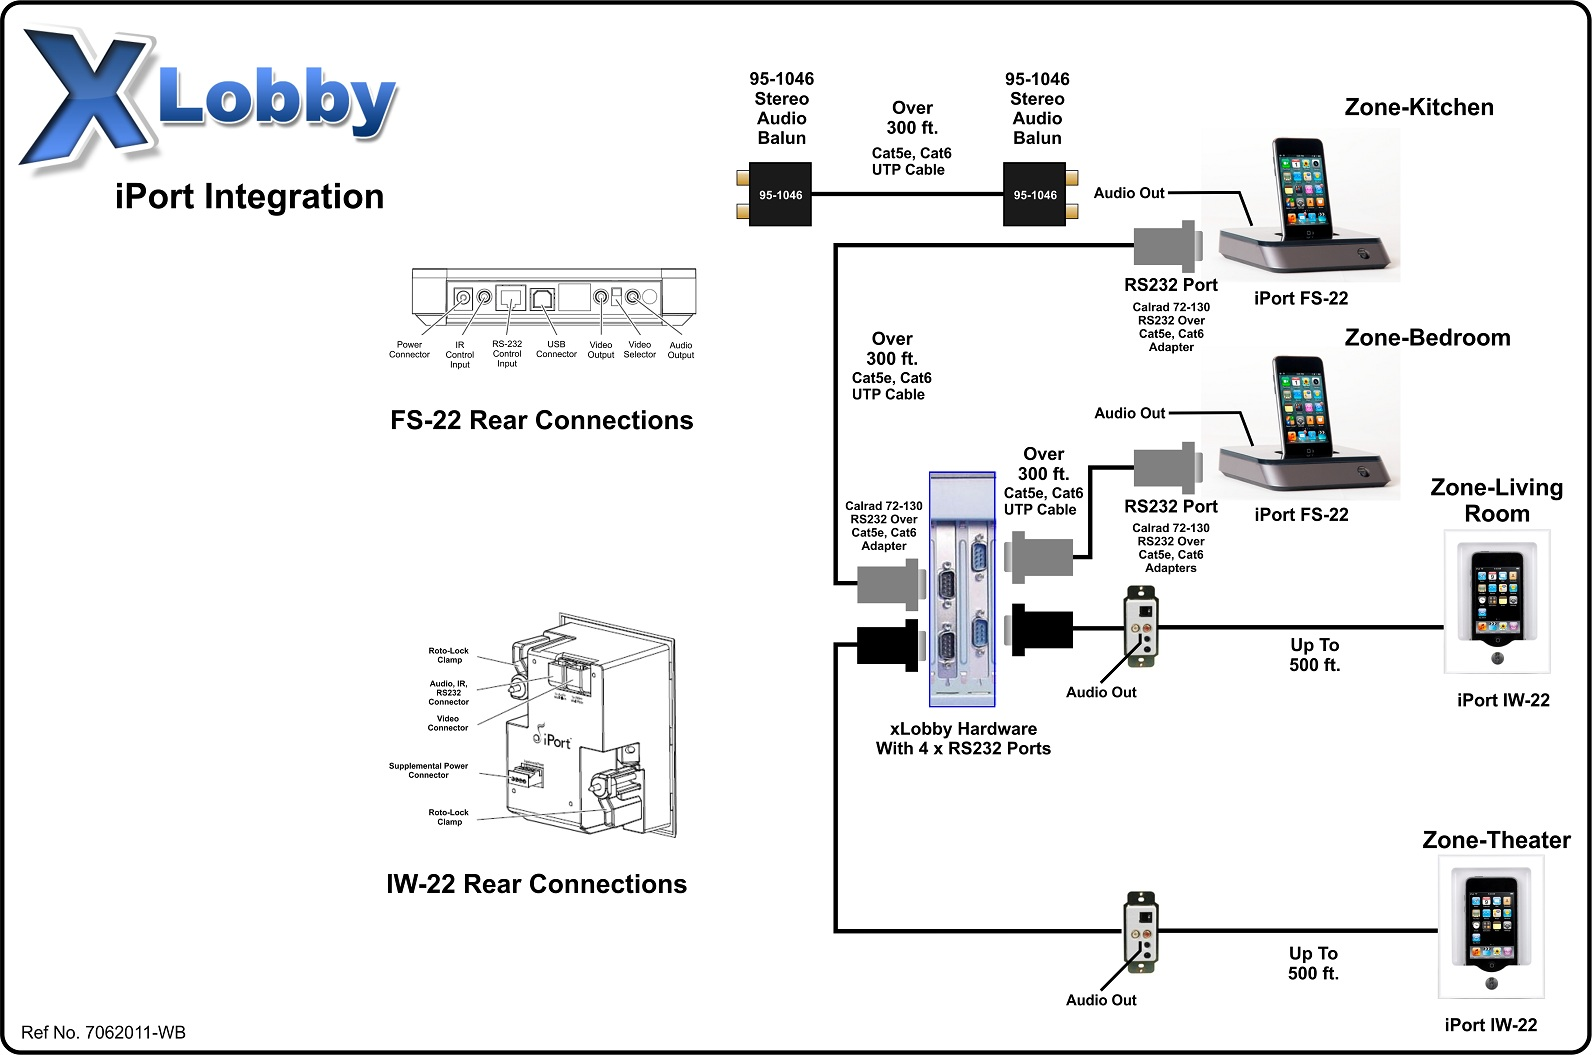 Xlobby News News Archive Xlobby Iport Integration